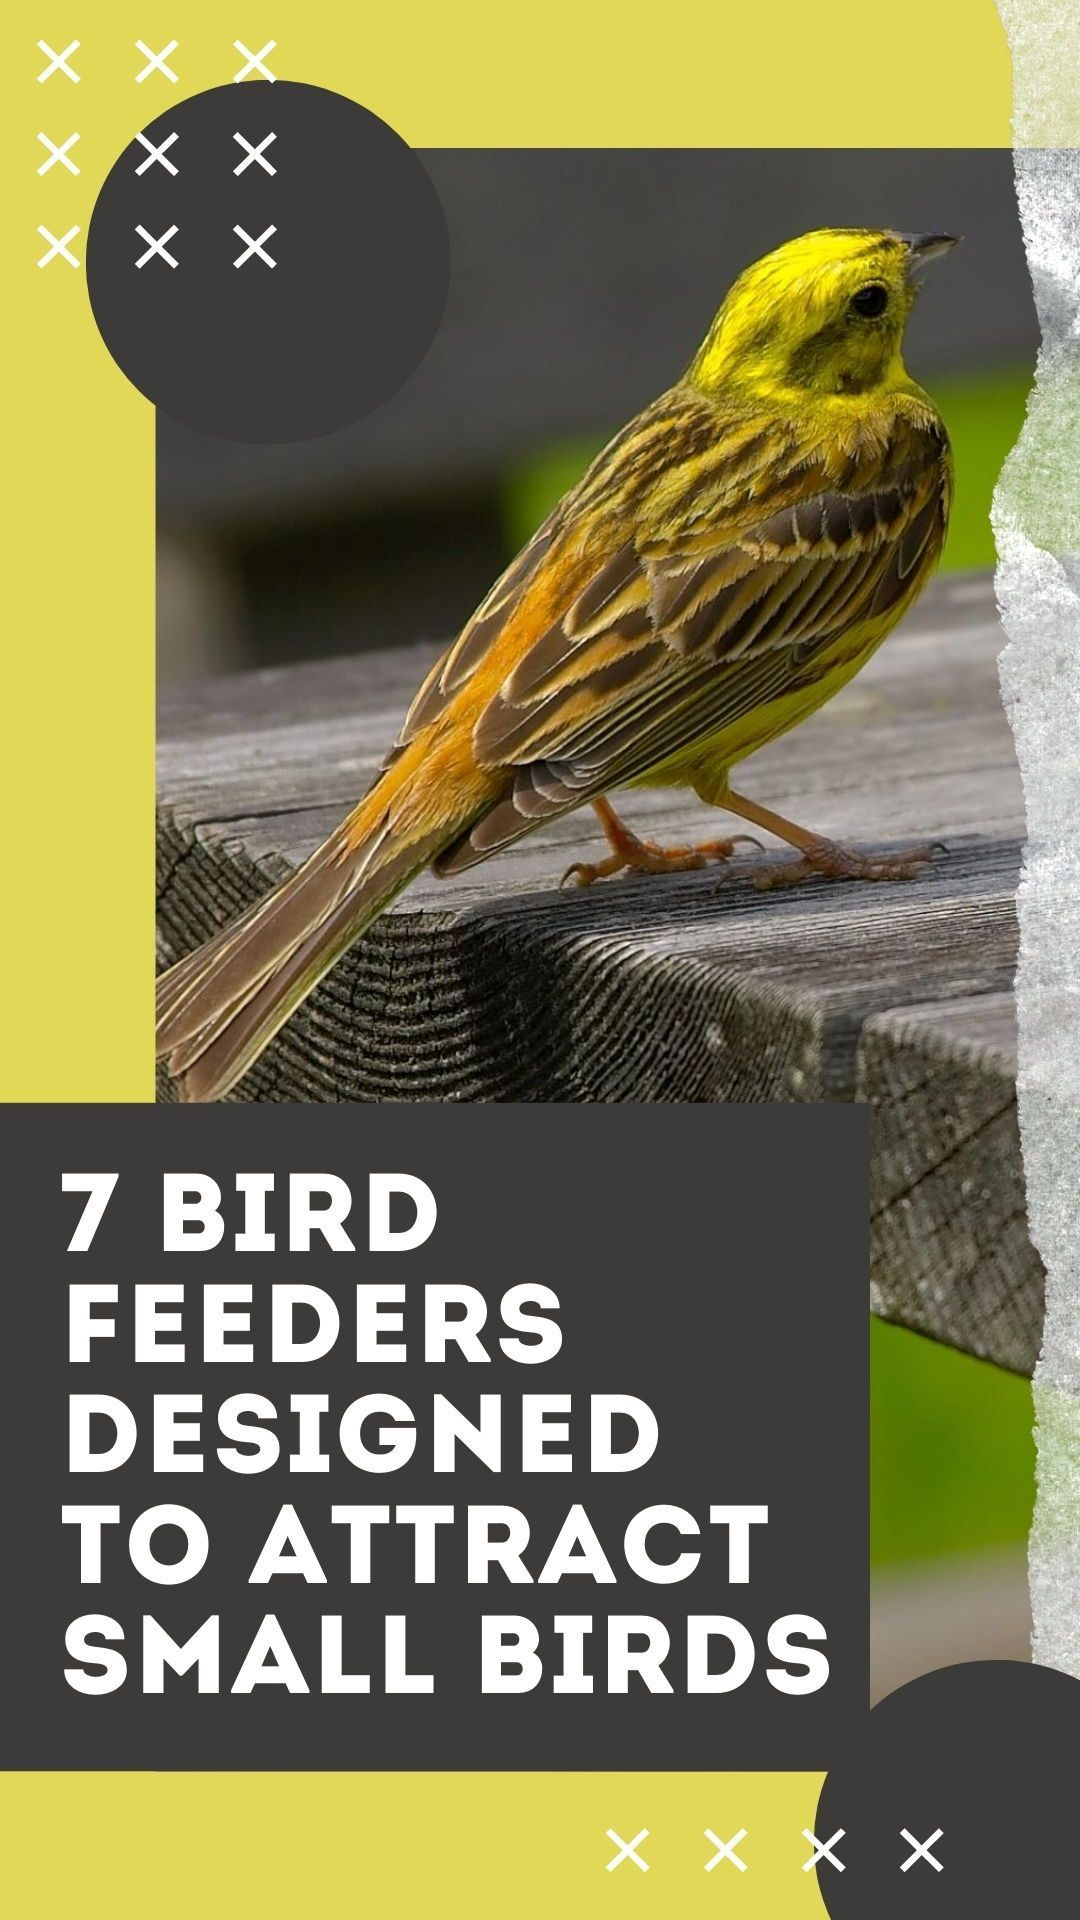 3e7ce80dca86710a7d3f6a44b376f431 - How To Get Rid Of Birds In Your Trees